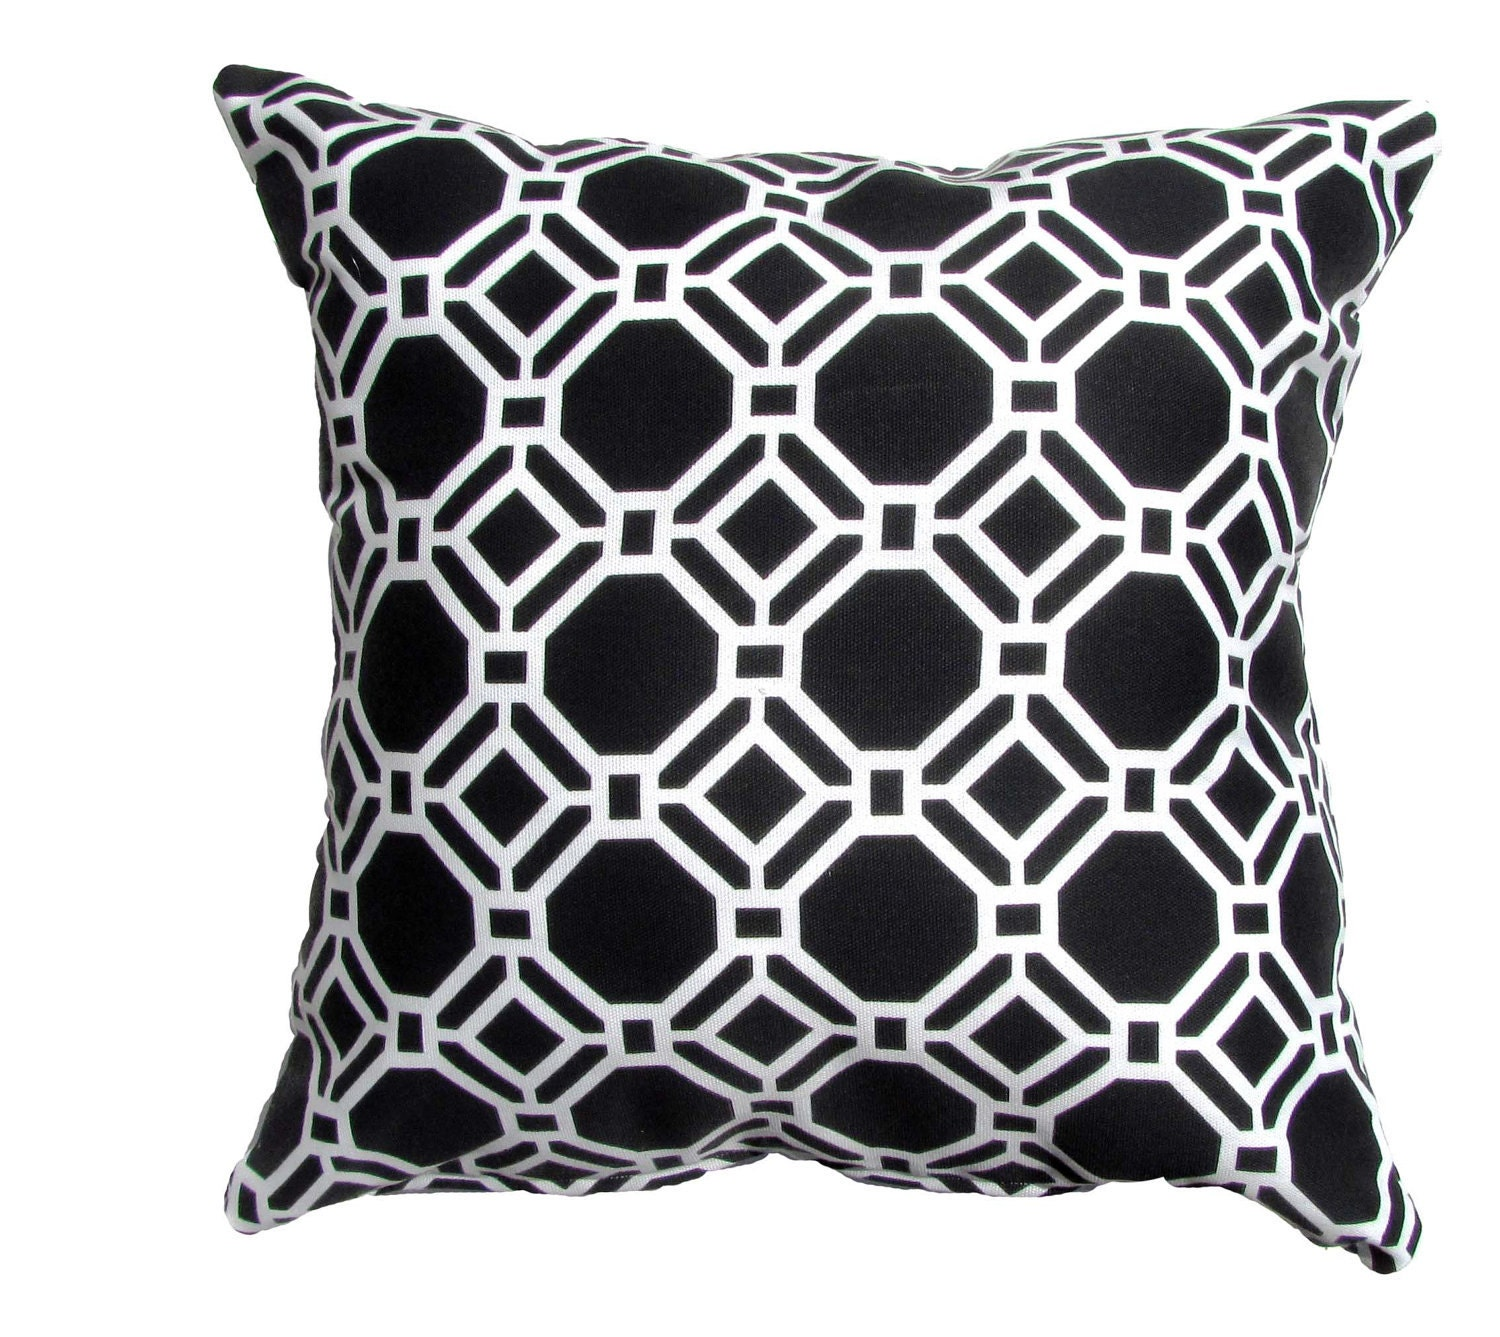 Items similar to Black and White Pillow Cover Modern Pillow Cover Black/White Geometric Shapes ...